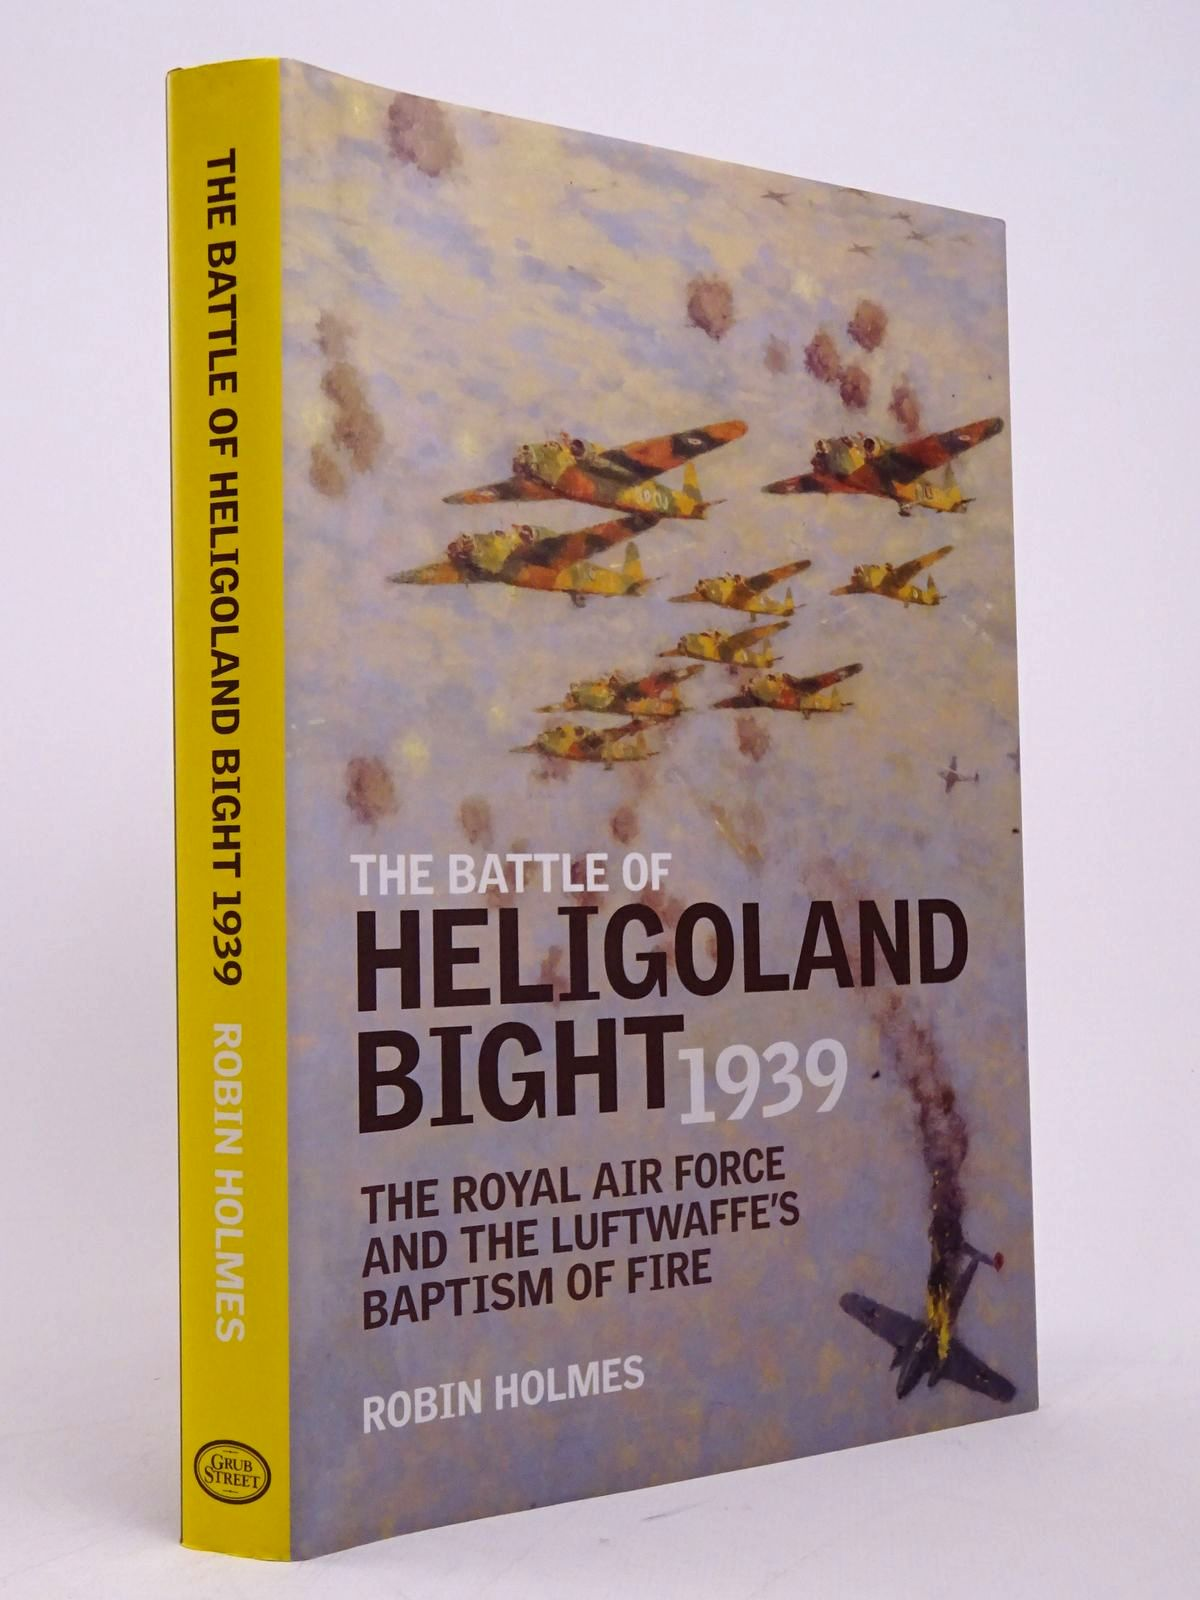 Photo of THE BATTLE OF HELIGOLAND BIGHT 1939: THE ROYAL AIR FORCE AND THE LUFTWAFFE'S BAPTISM OF FIRE written by Holmes, Robin published by Grub Street (STOCK CODE: 1817739)  for sale by Stella & Rose's Books